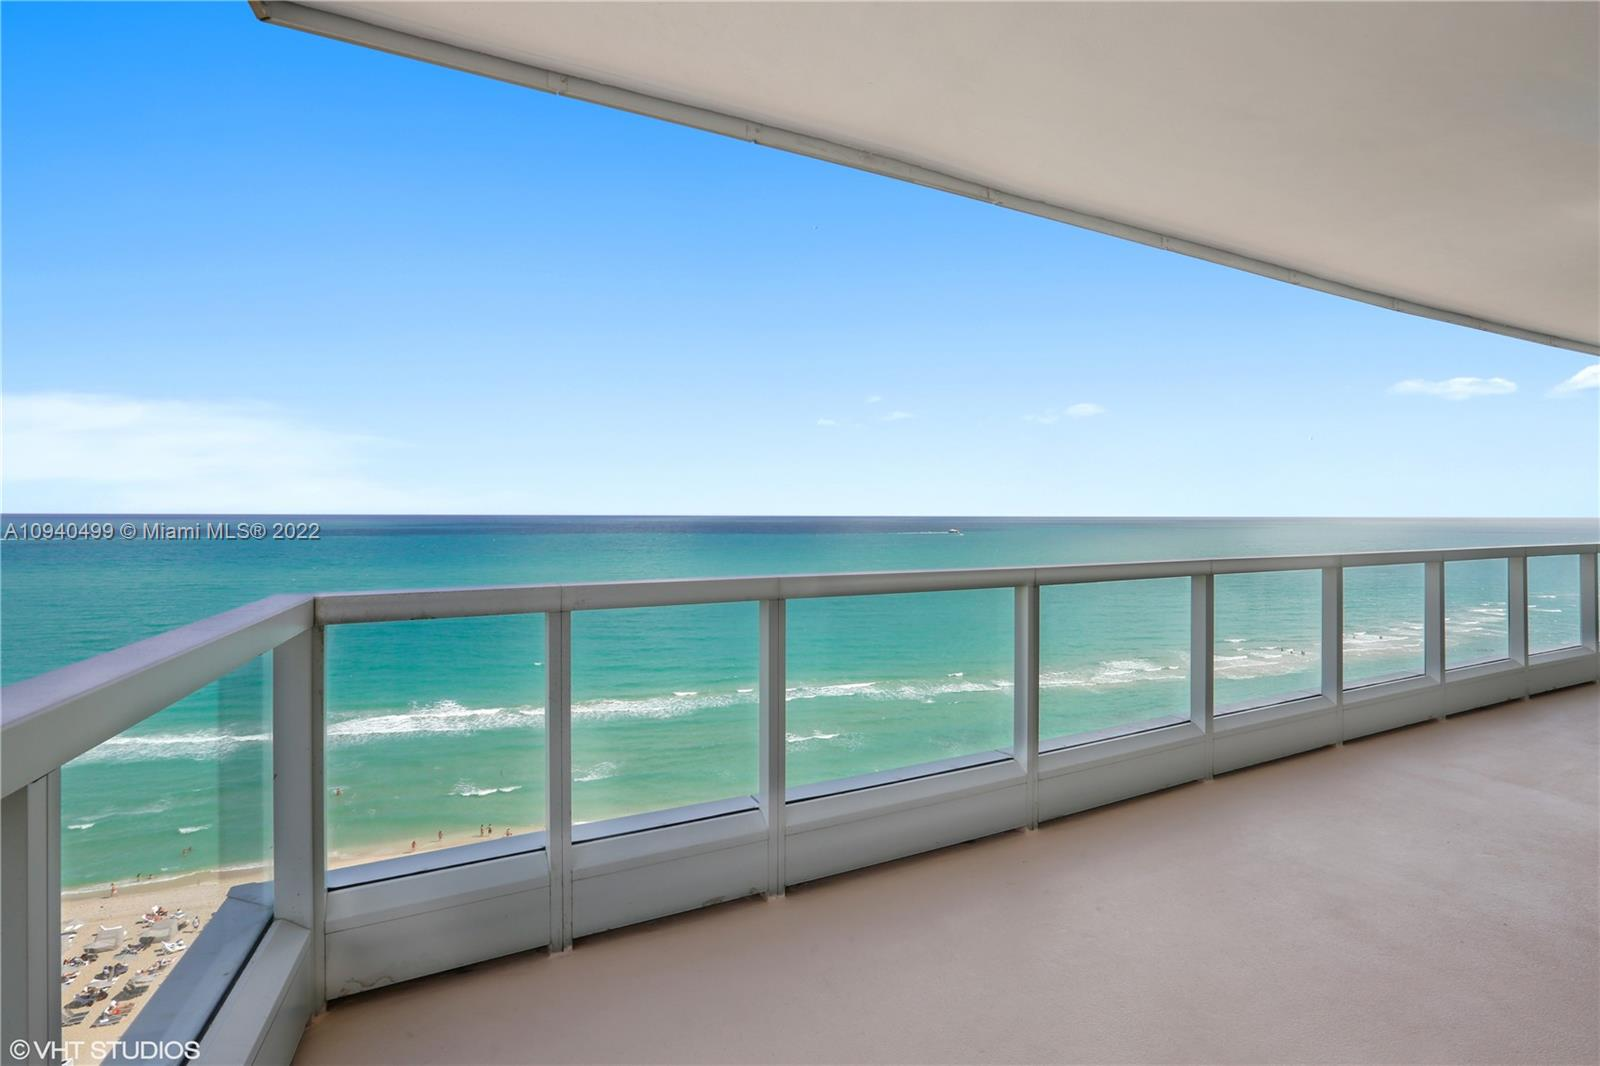 Beautiful 1BD/1.5 BA w/unobstructed direct views of the ocean at Fontainebleau III. Enjoy full service, vacationstyle living in a furnished turnkey unit with king bed, sleeper sofa & more. Enroll in hotel rental program & receive income while away! The Fontainebleau Resort offers luxury amenities on 22 oceanfront acres including awardwinning restaurants, LIV night club, Lapis spa & state-of-the-art fitness center. Maintenance fee includes: AC, local calls, electricity, valet + daily free breakfast in the owner's lounge.